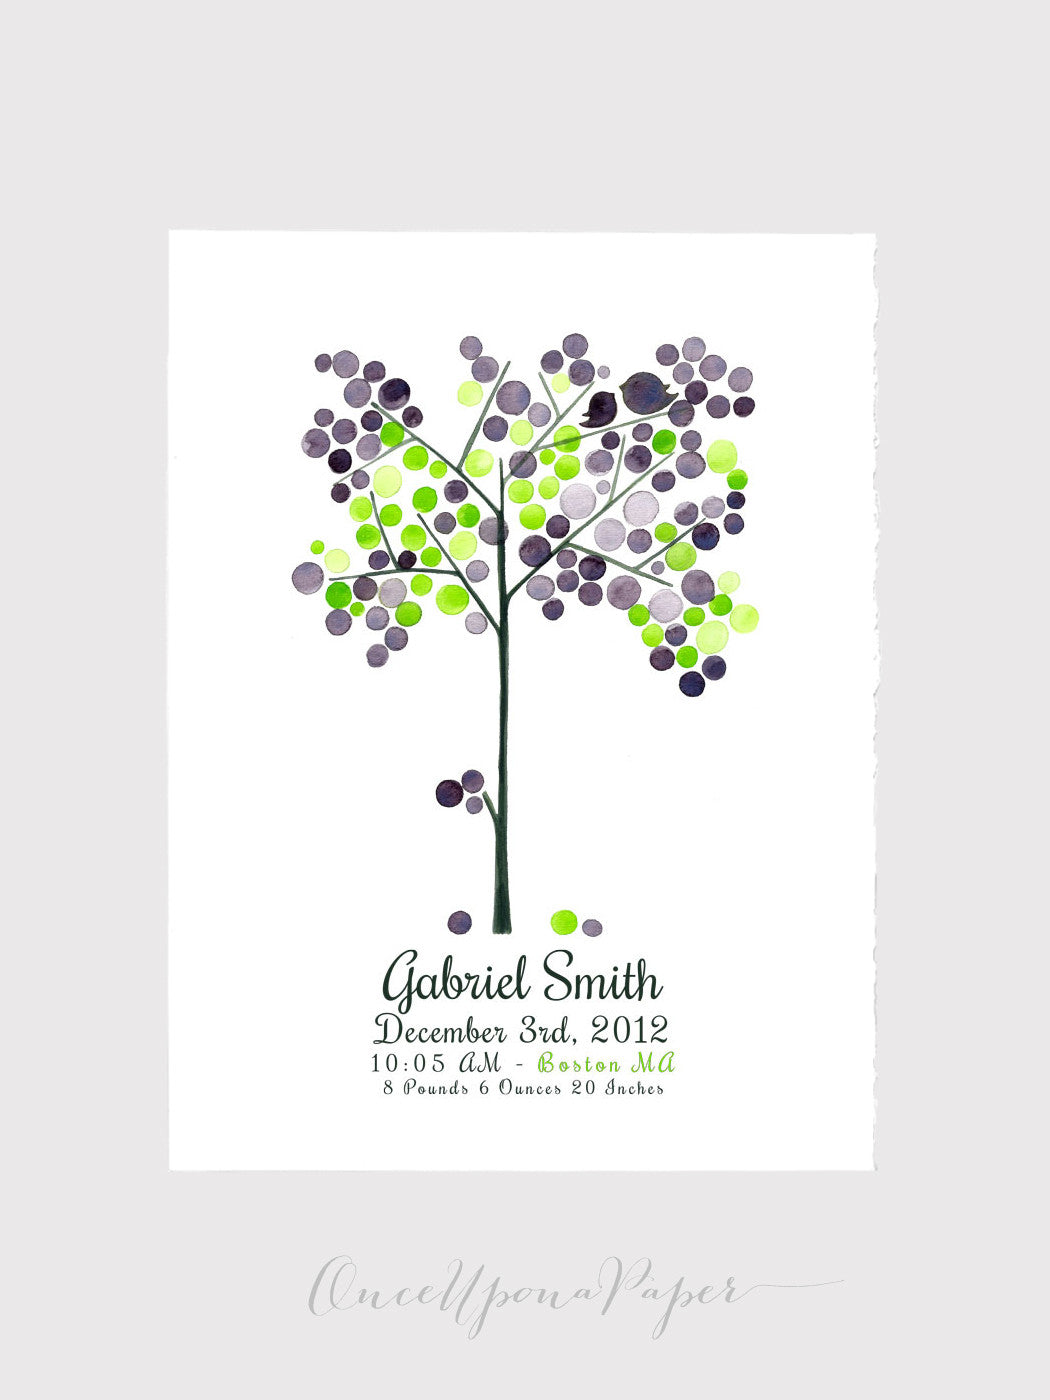 Wedding Gift - custom name EVENT TREE PRINT, kids wall decor, kids room decor, Baby shower, Anniversary, Special Day, Birthday, Graduation